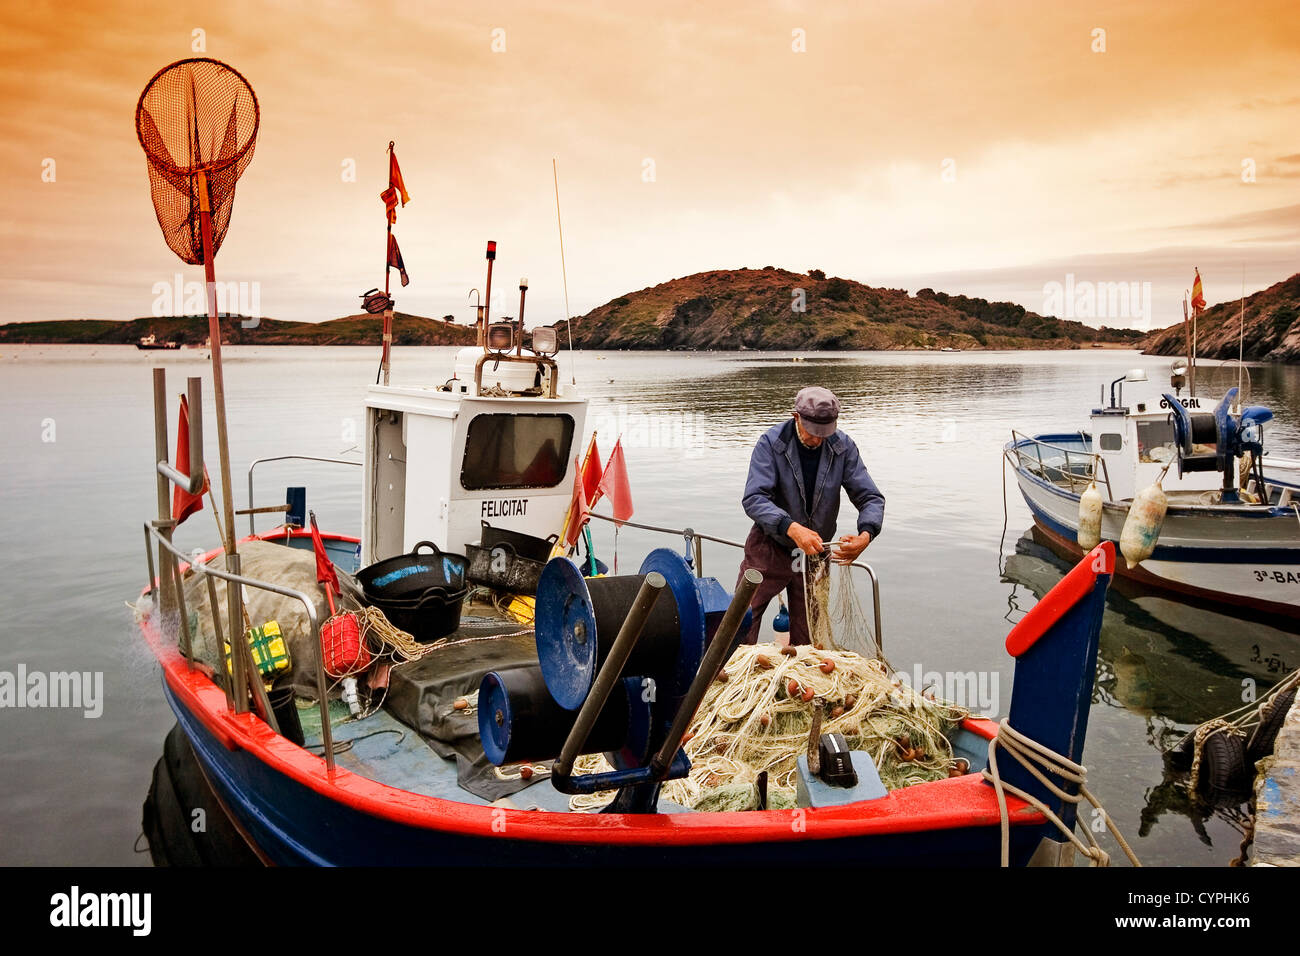 Fishing boats sunrise Port Lligat Cadaques Costa Brava Girona Catalonia Spain barcas de pescadores amanecer port - Stock Image